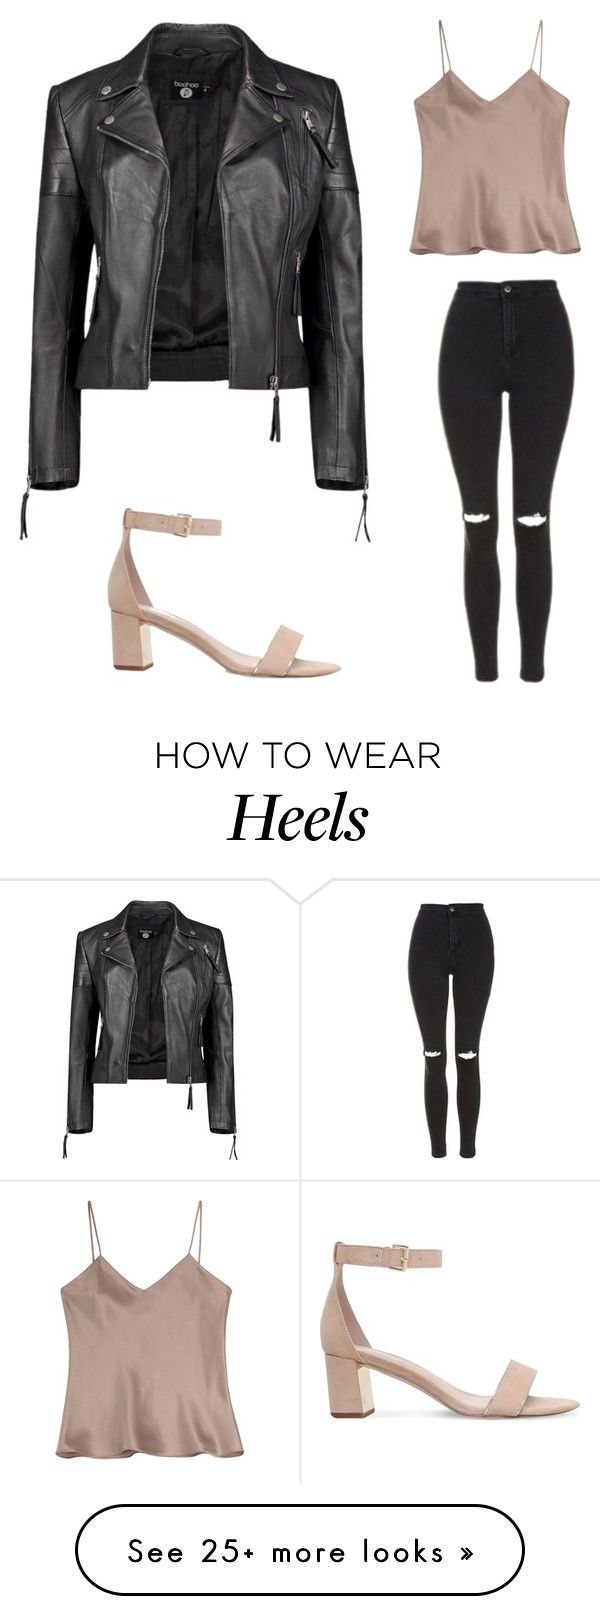 """Silk top with leather jacket, ripped jeans, and light pink heels"" by gymluvrlexi on Polyvore featuring Topshop, Carvela, Boohoo and Etro"